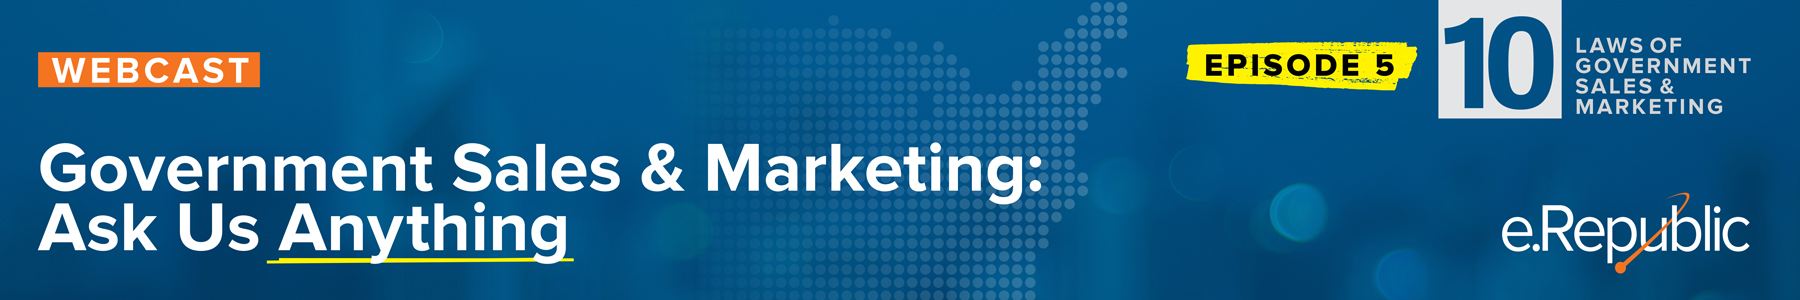 Episode 5: Government Sales and Marketing: Ask Us Anything